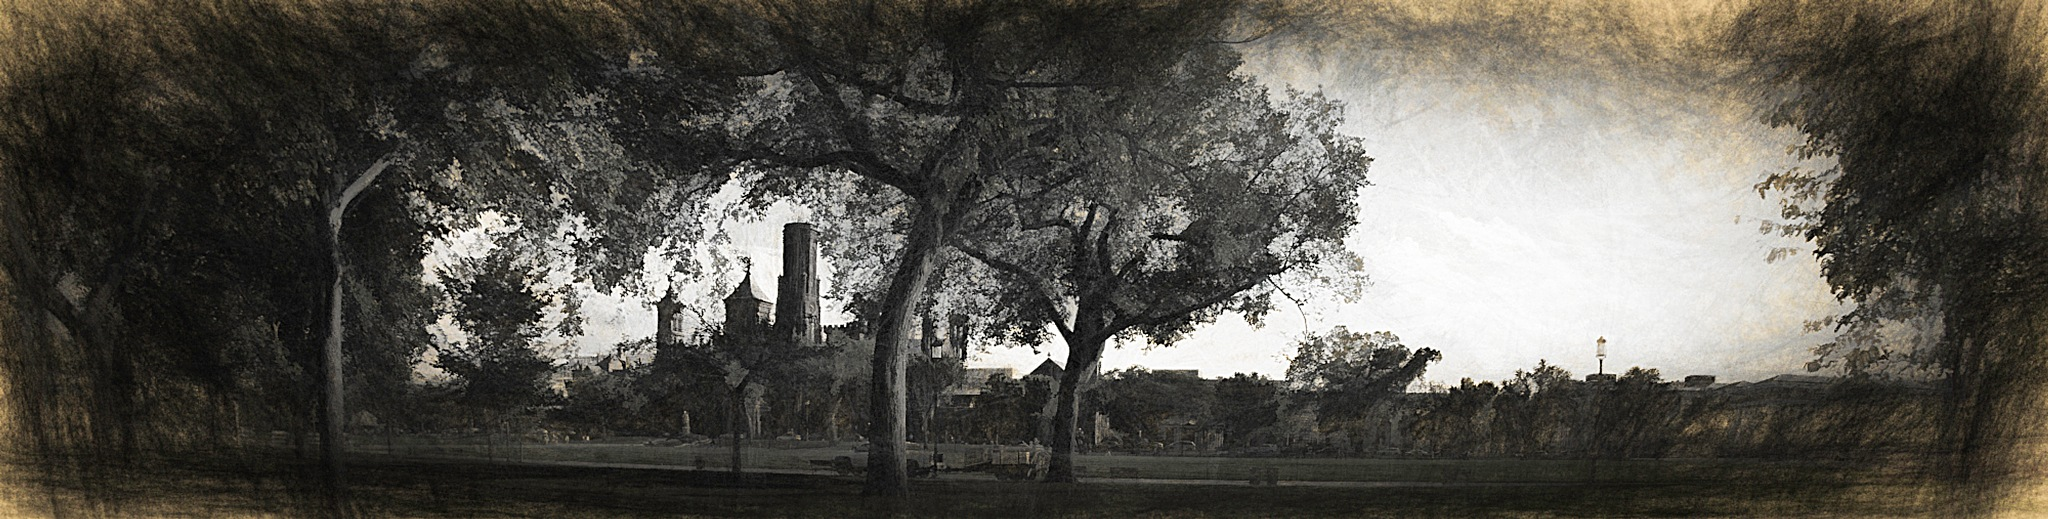 The Smithsonian Castle by JohnEllingson